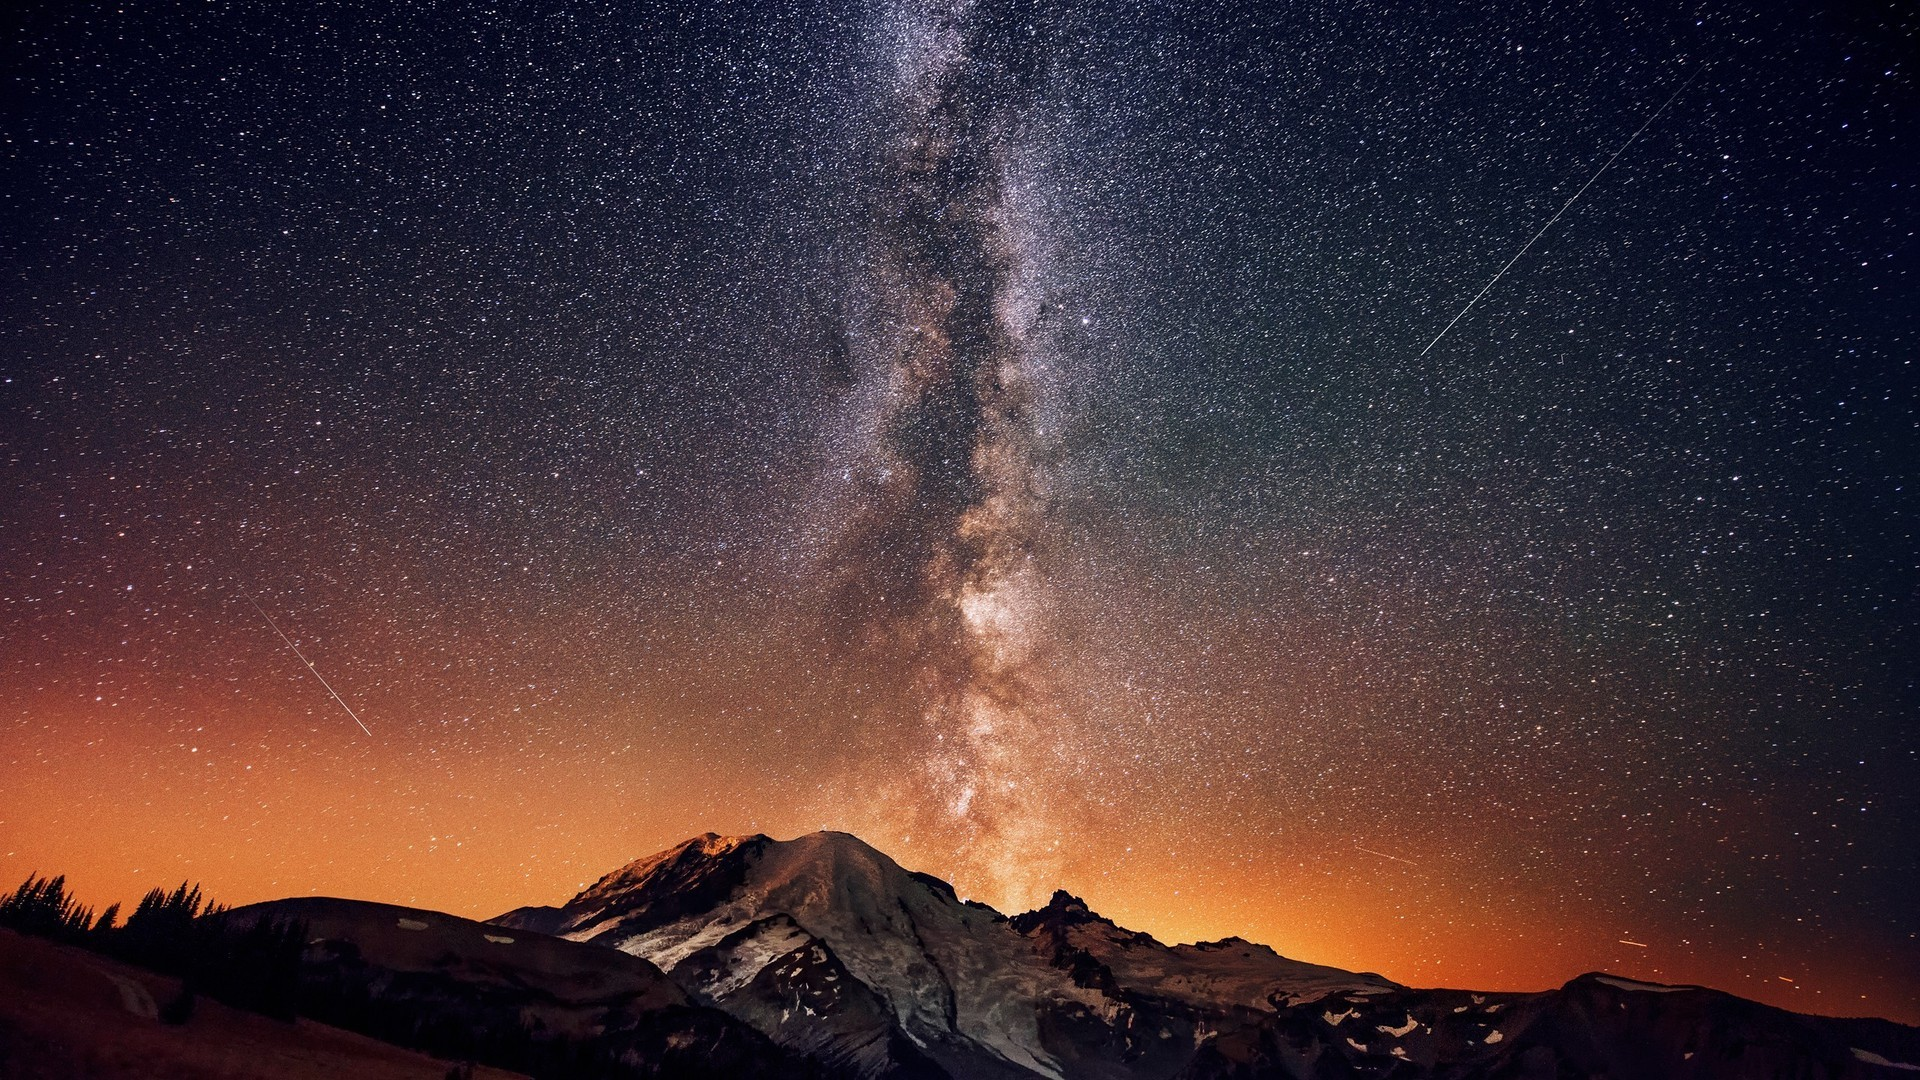 1920x1080 Milky Way above the mountains HD Wallpaper  Milky ...